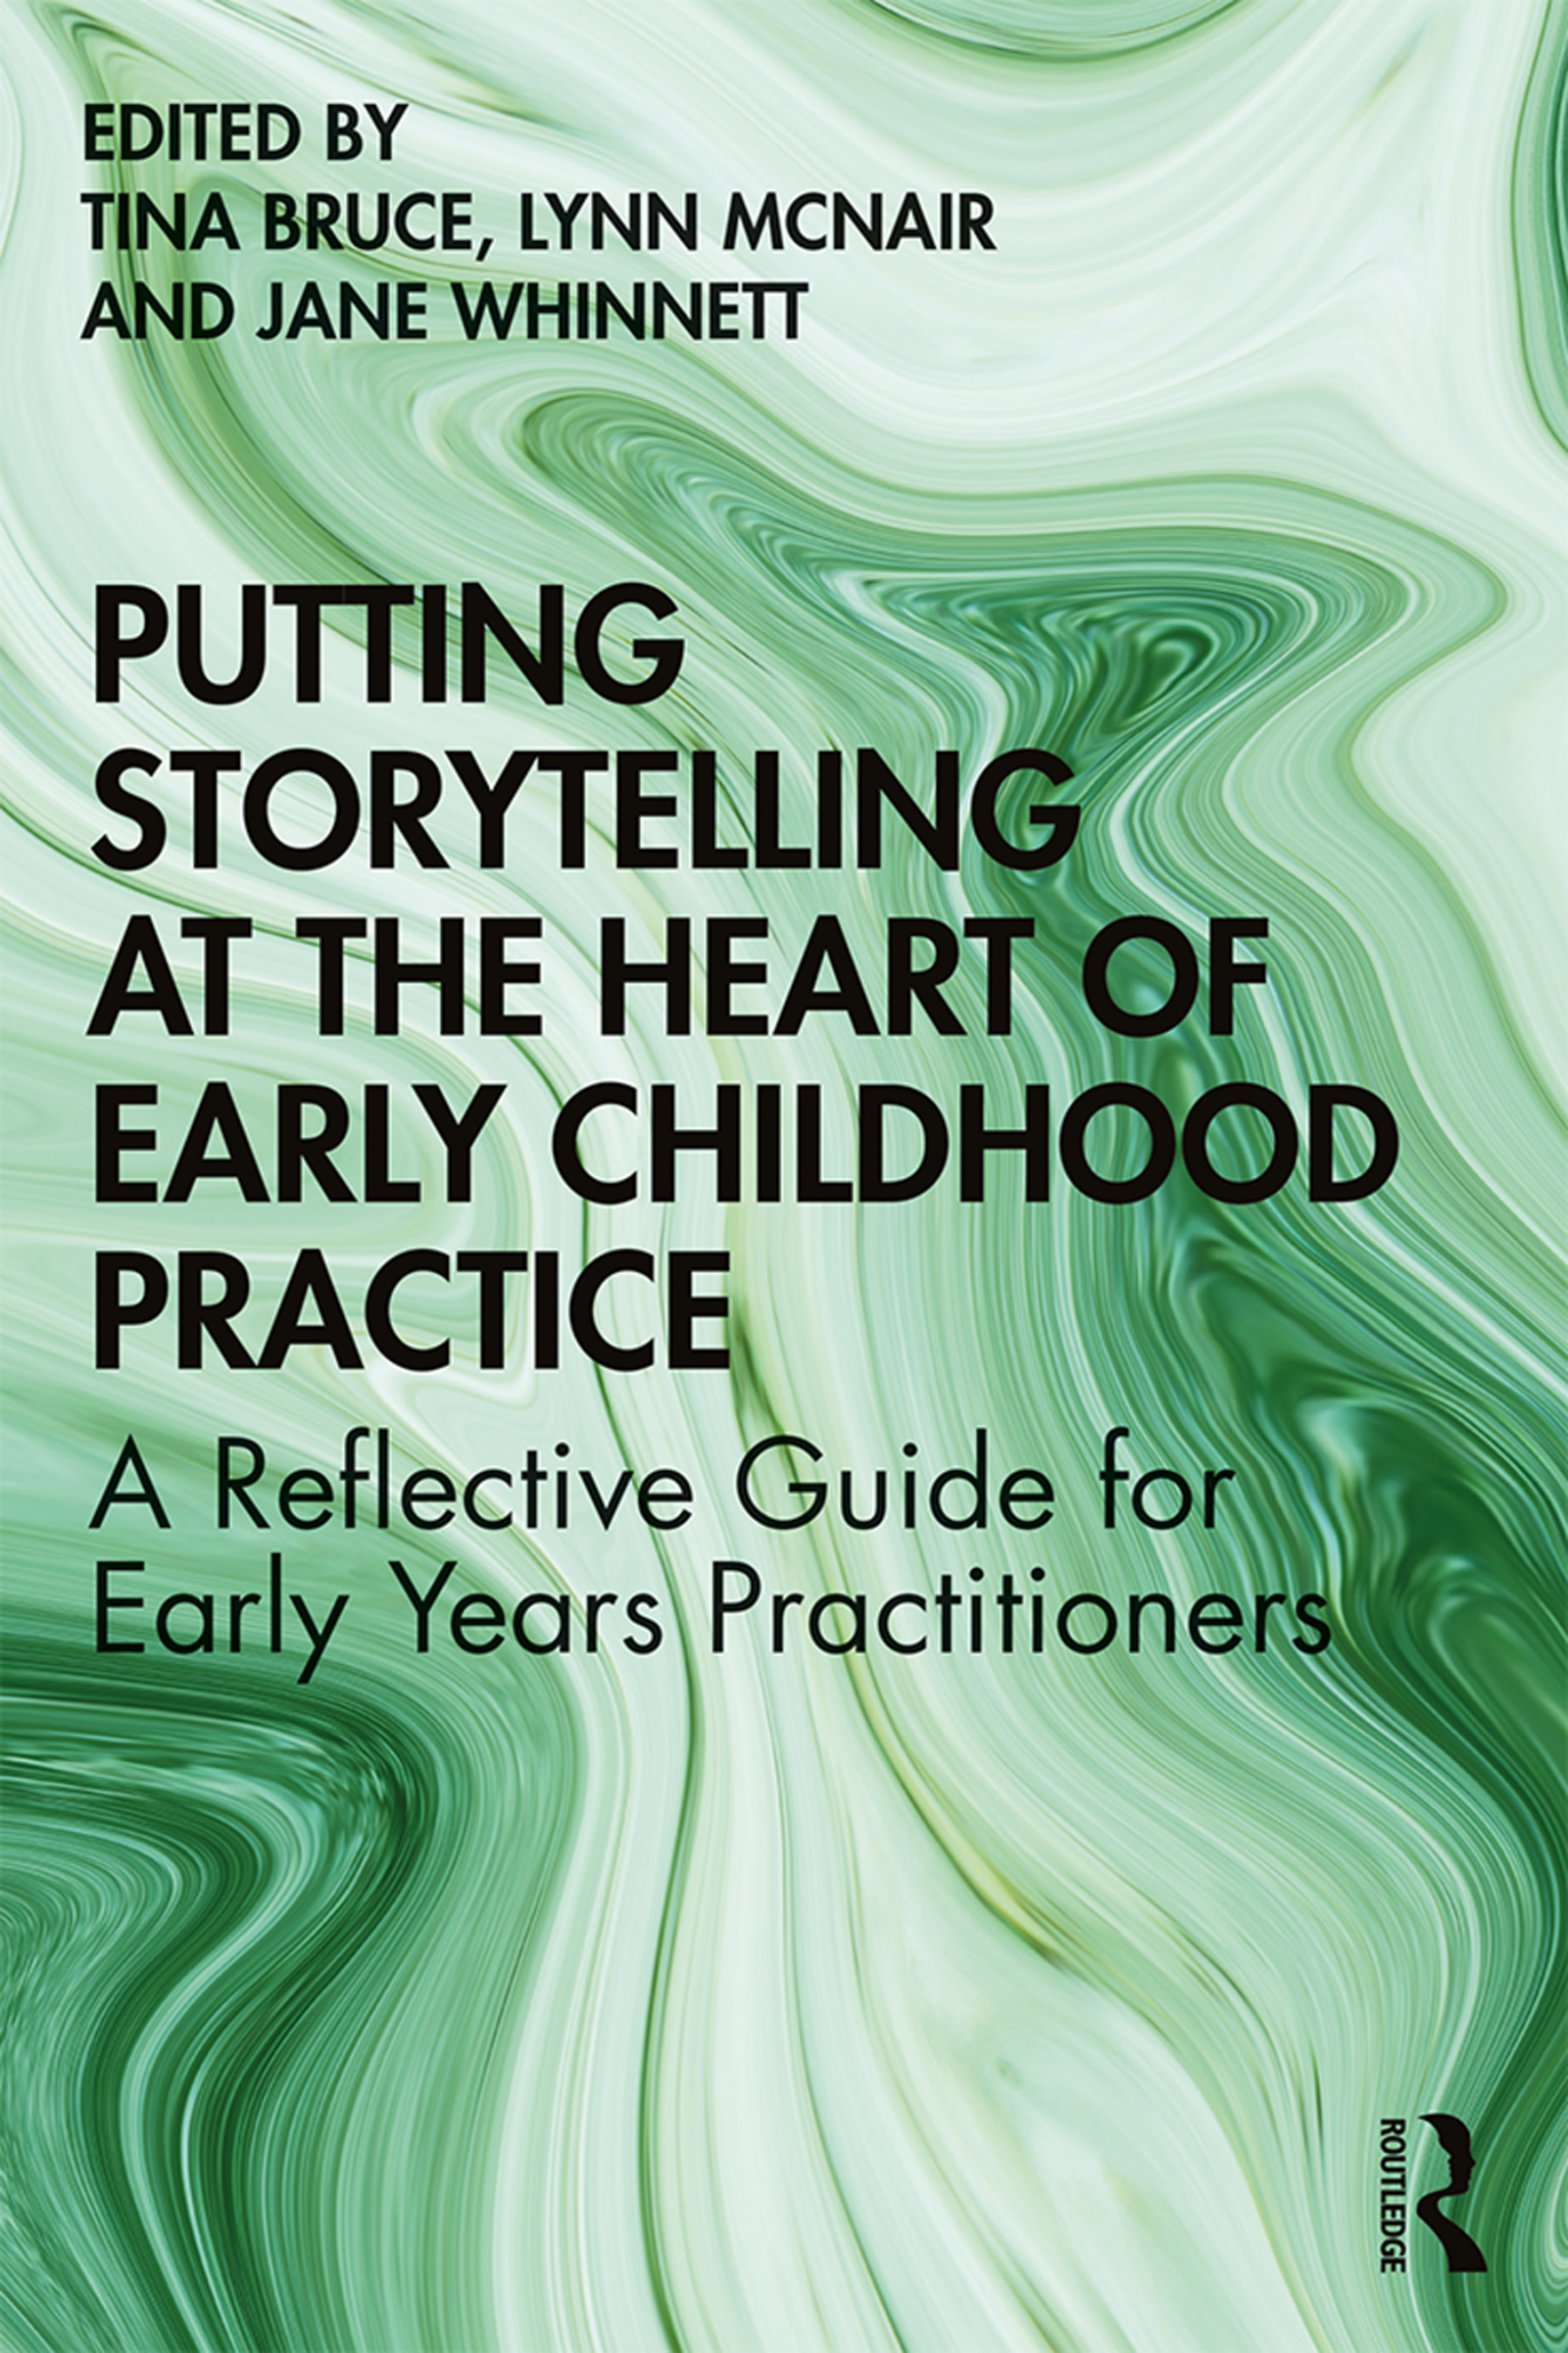 Putting Storytelling at the Heart of Early Childhood Practice: A Reflective Guide for Early Years Practitioners book cover